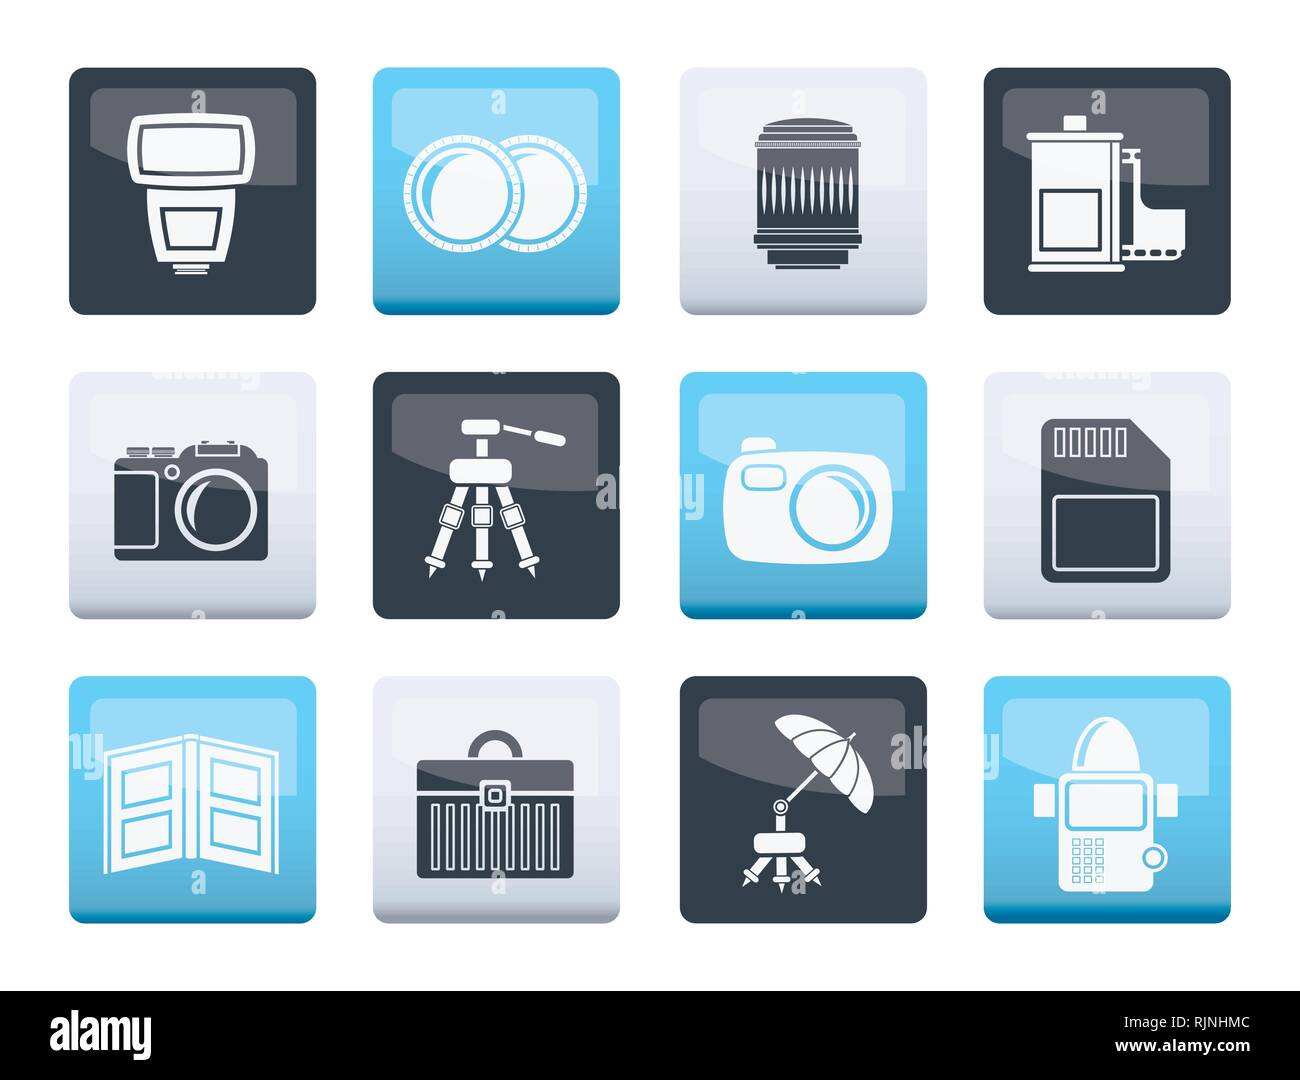 Photography equipment icons over color background - vector icon set Stock Vector